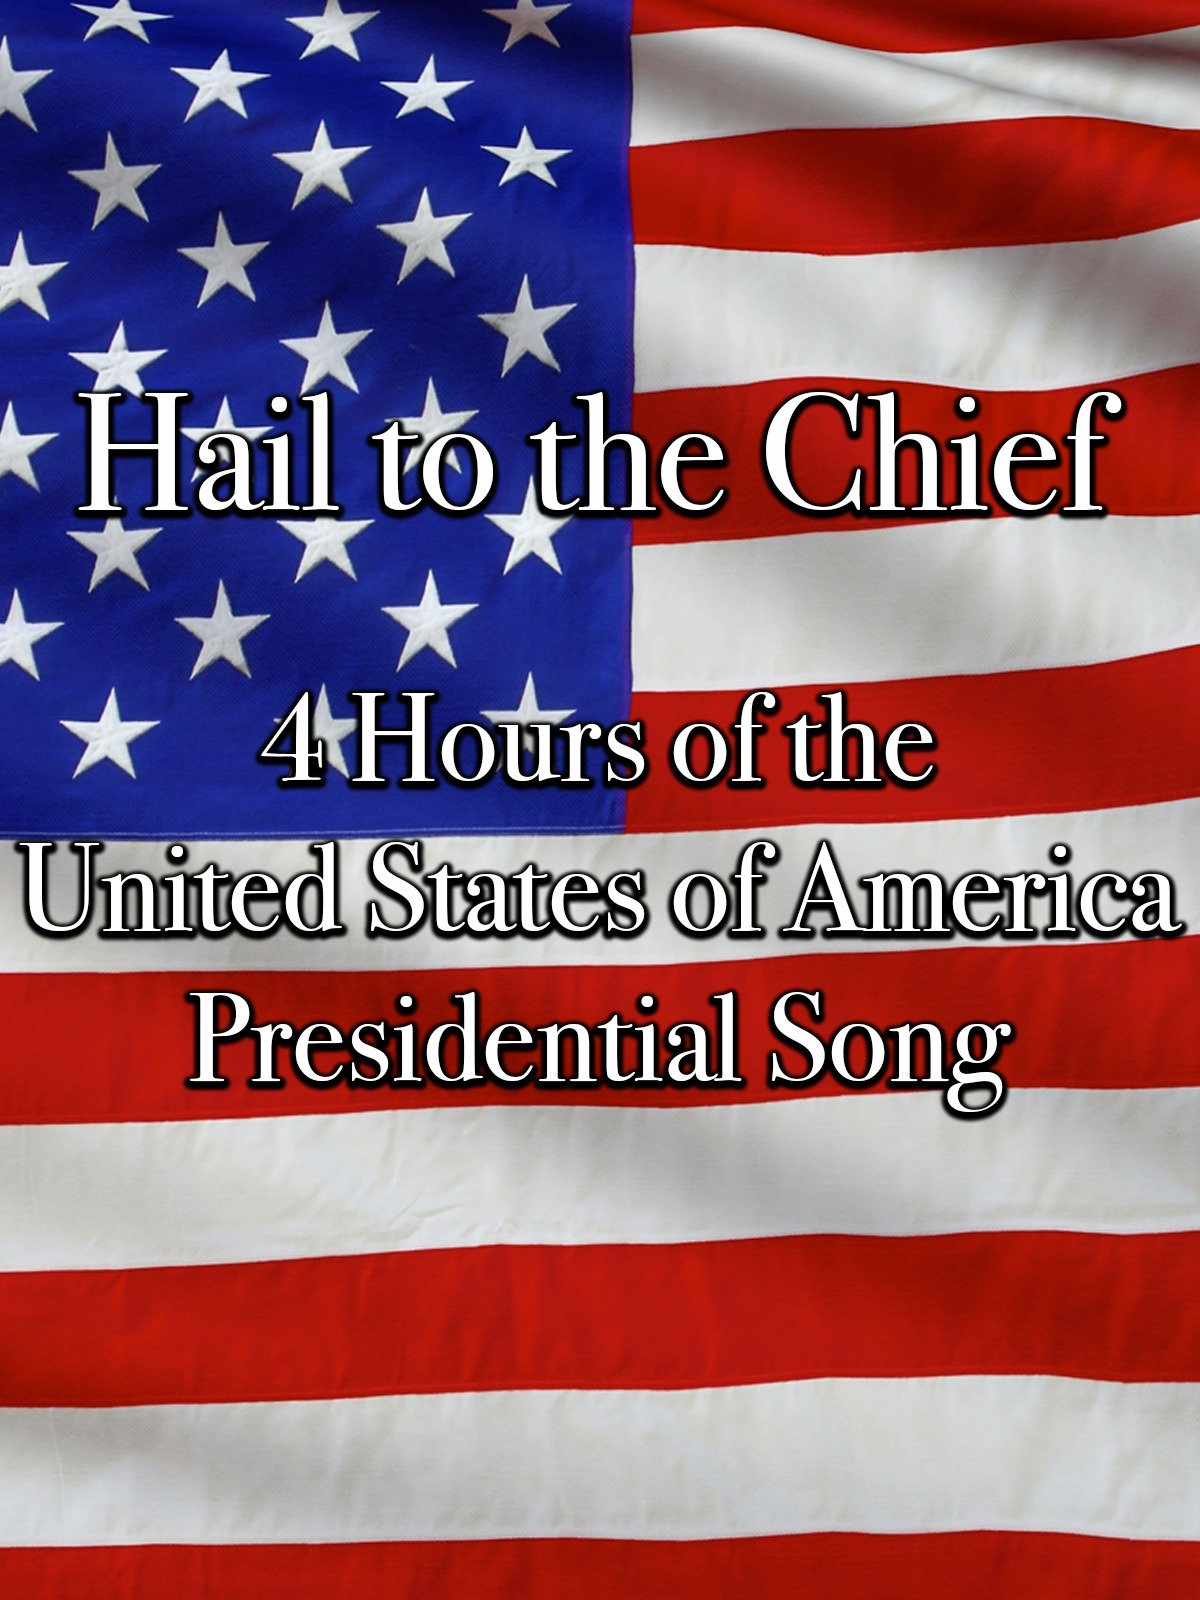 Hail to the Chief 4 Hours of the United States of America Presidential Song